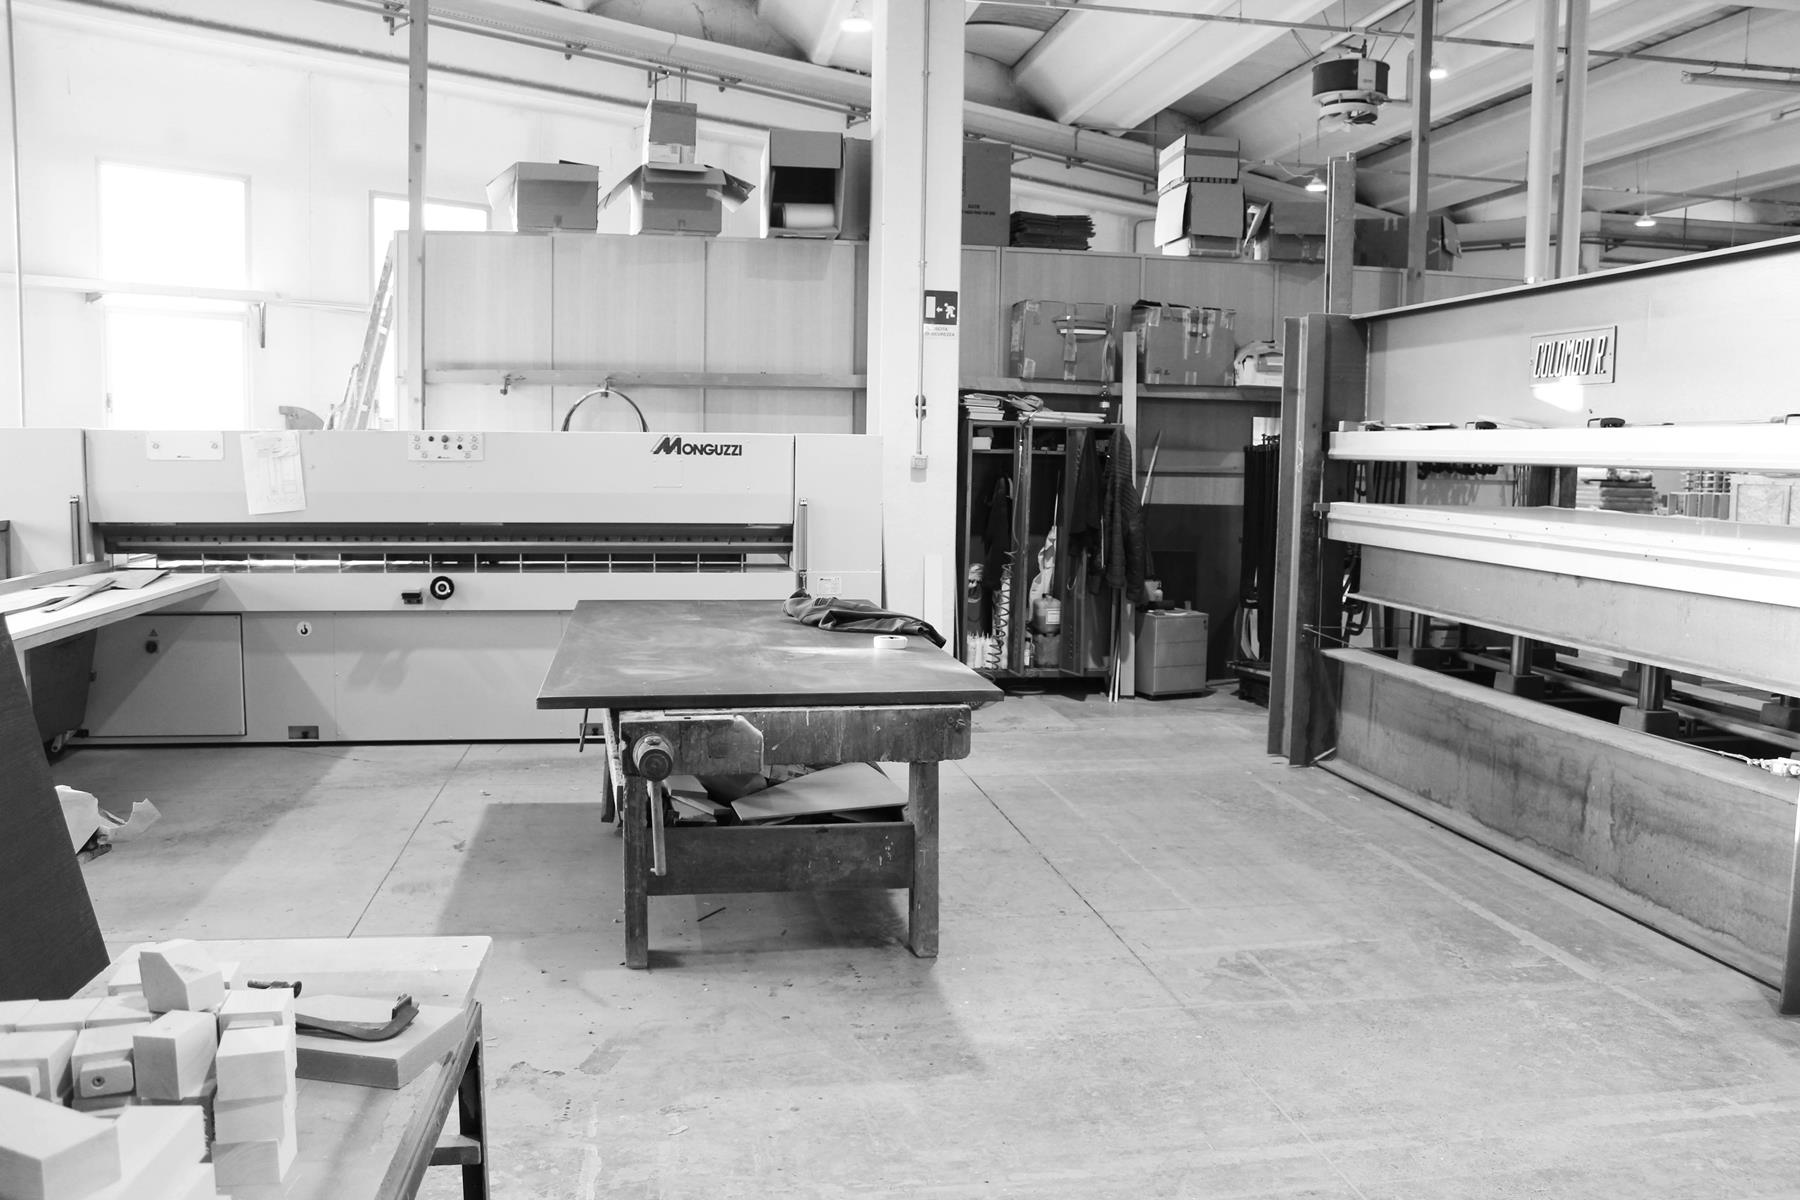 furniture production since 1850 - 6